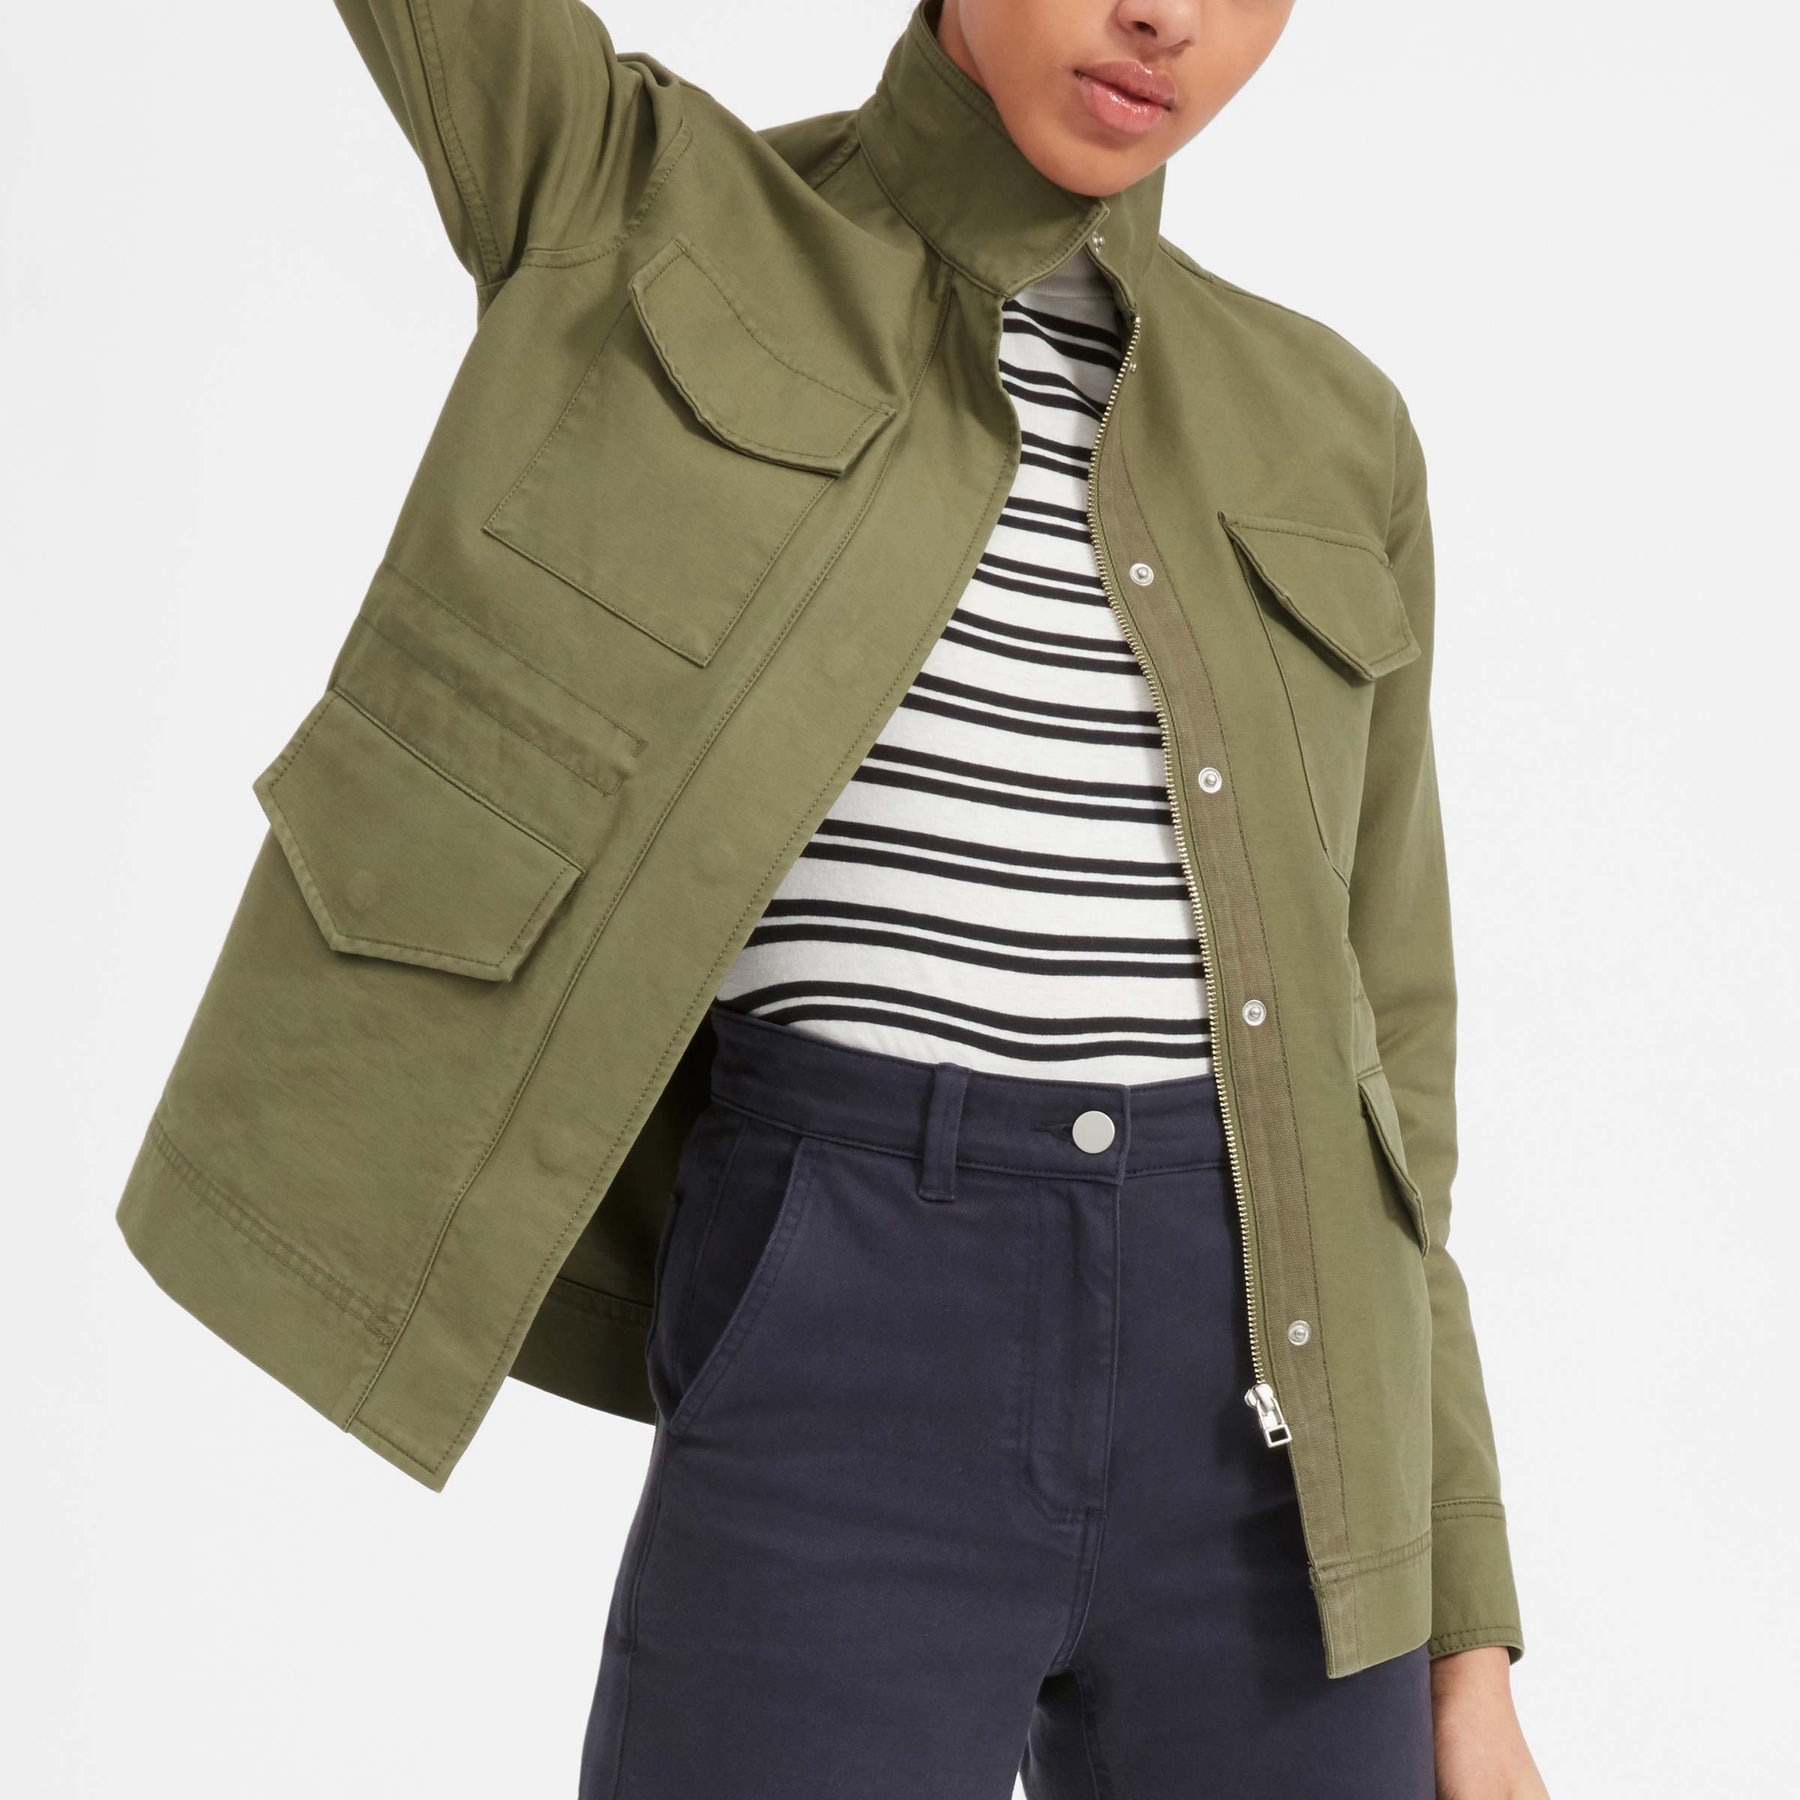 The Modern Utility Jacket - spring cleaning - The Gem Picker